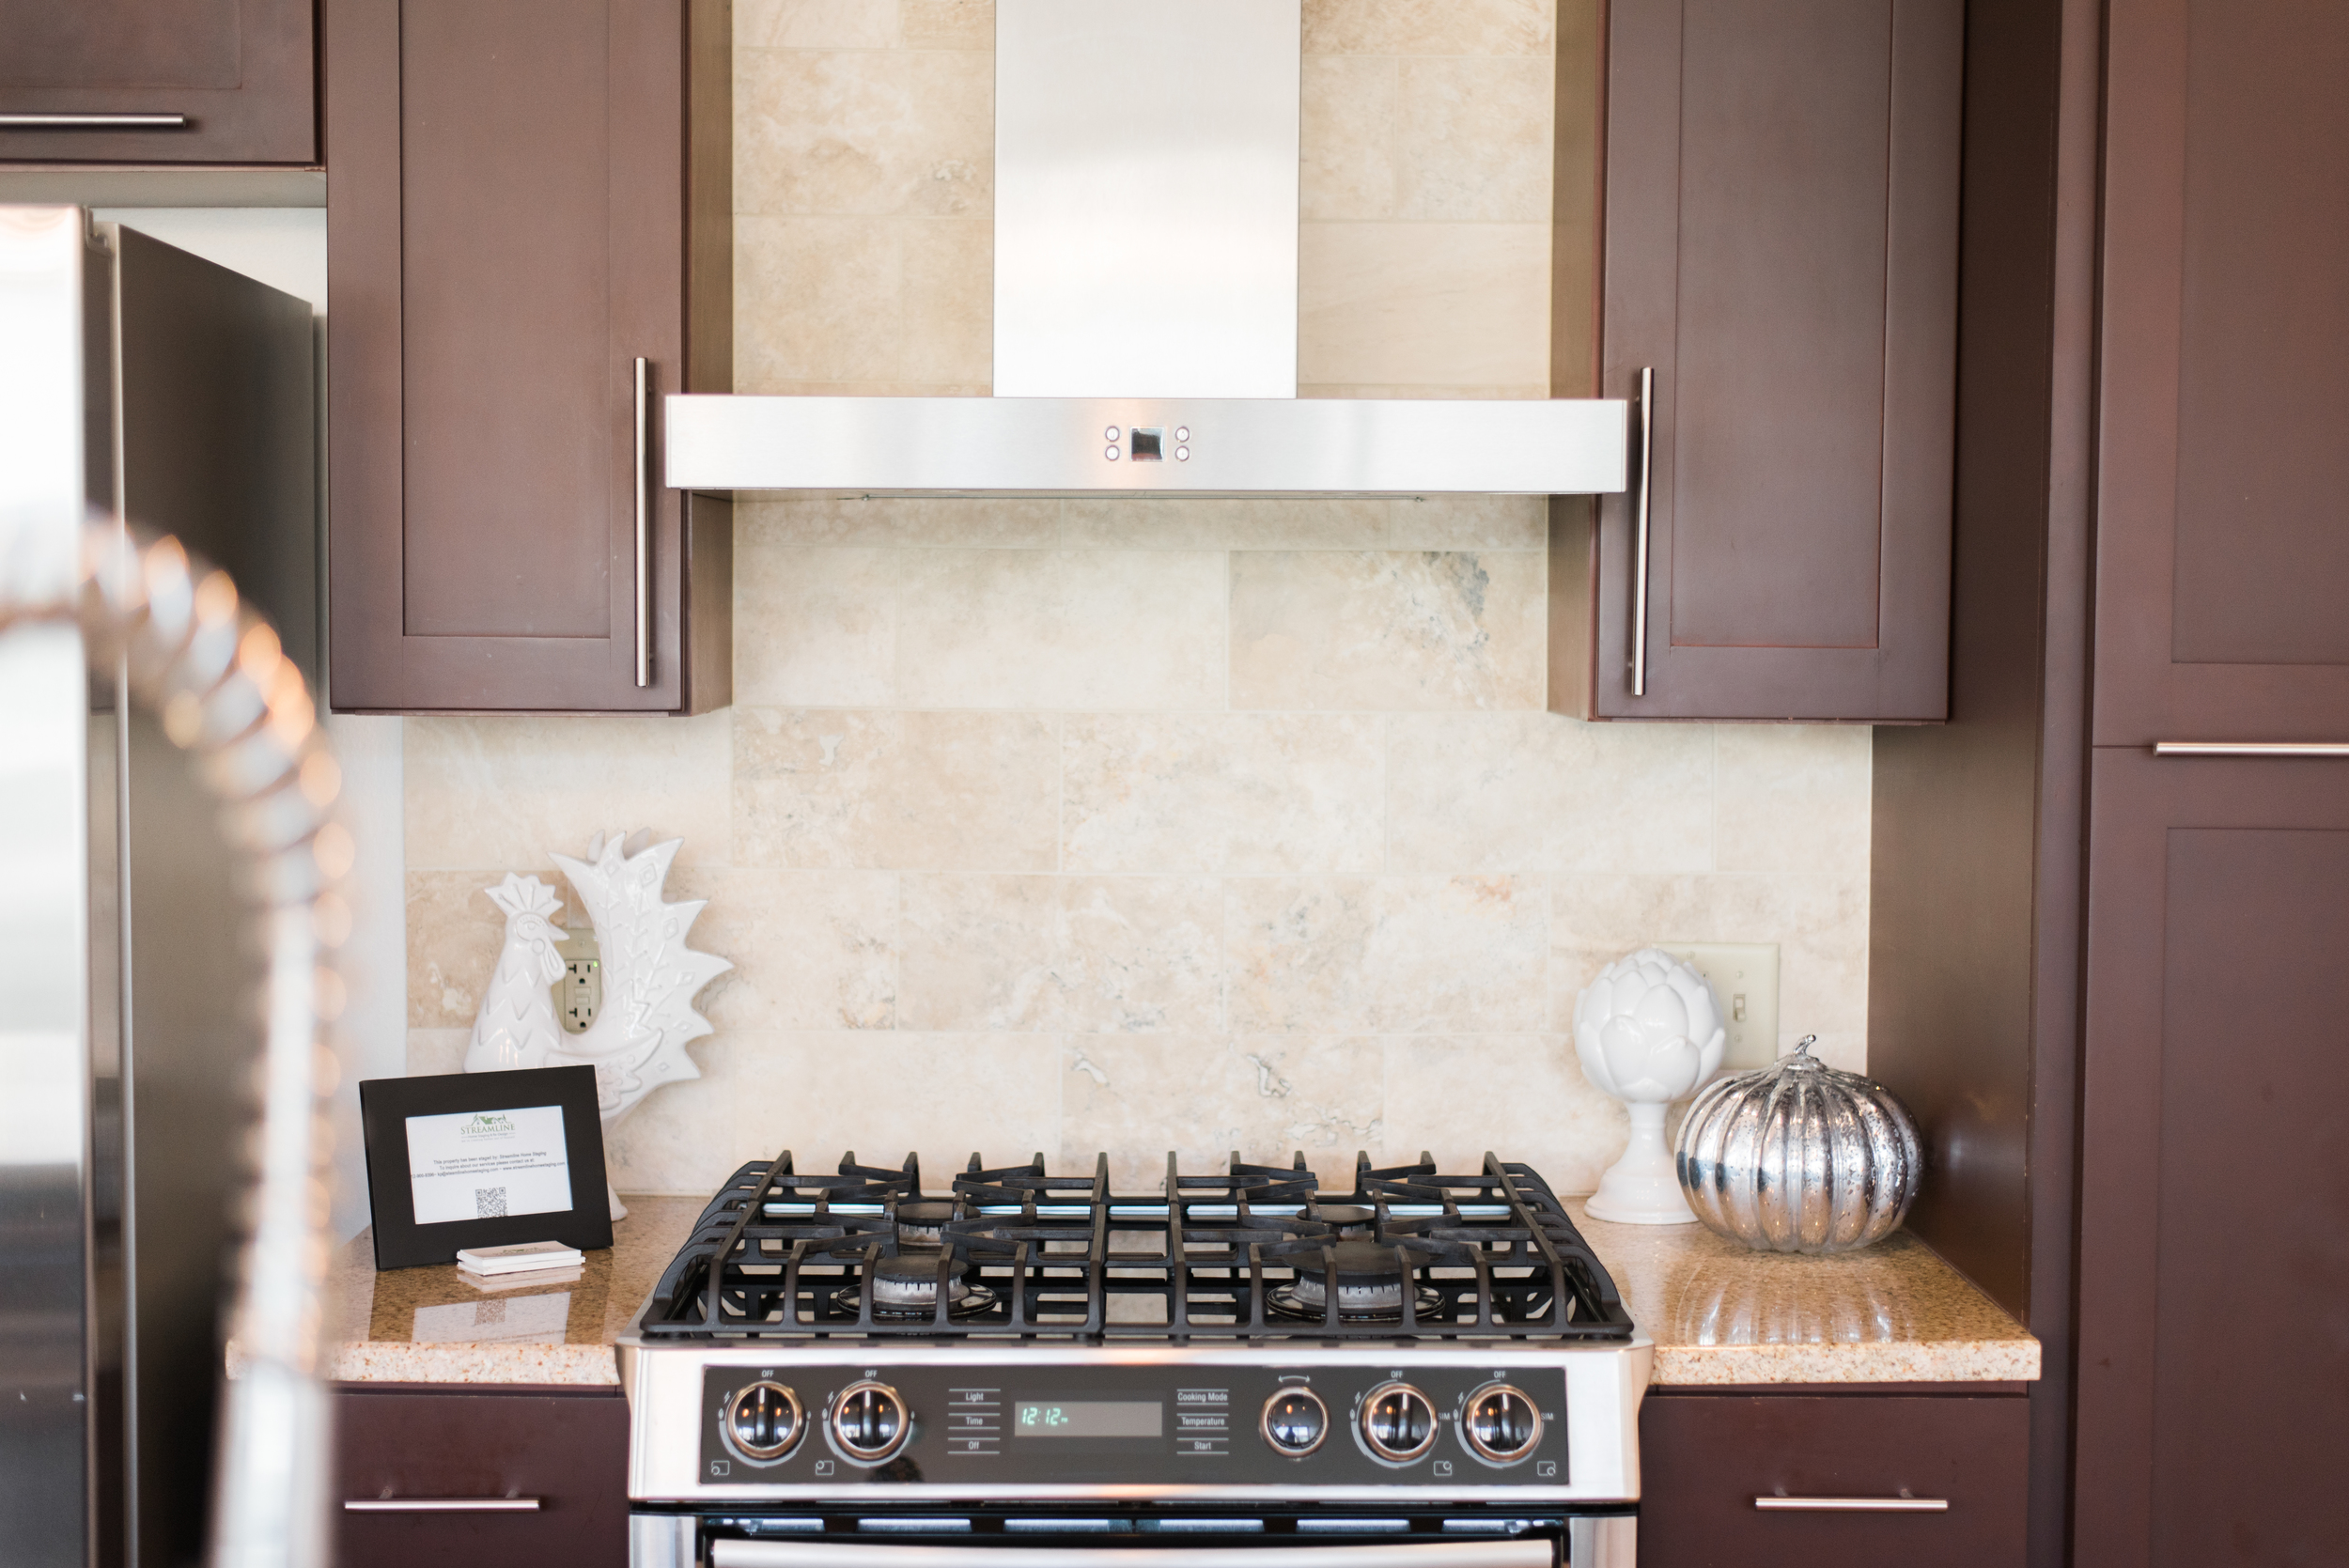 New gas stove with beautiful vent hood and cabinetry.